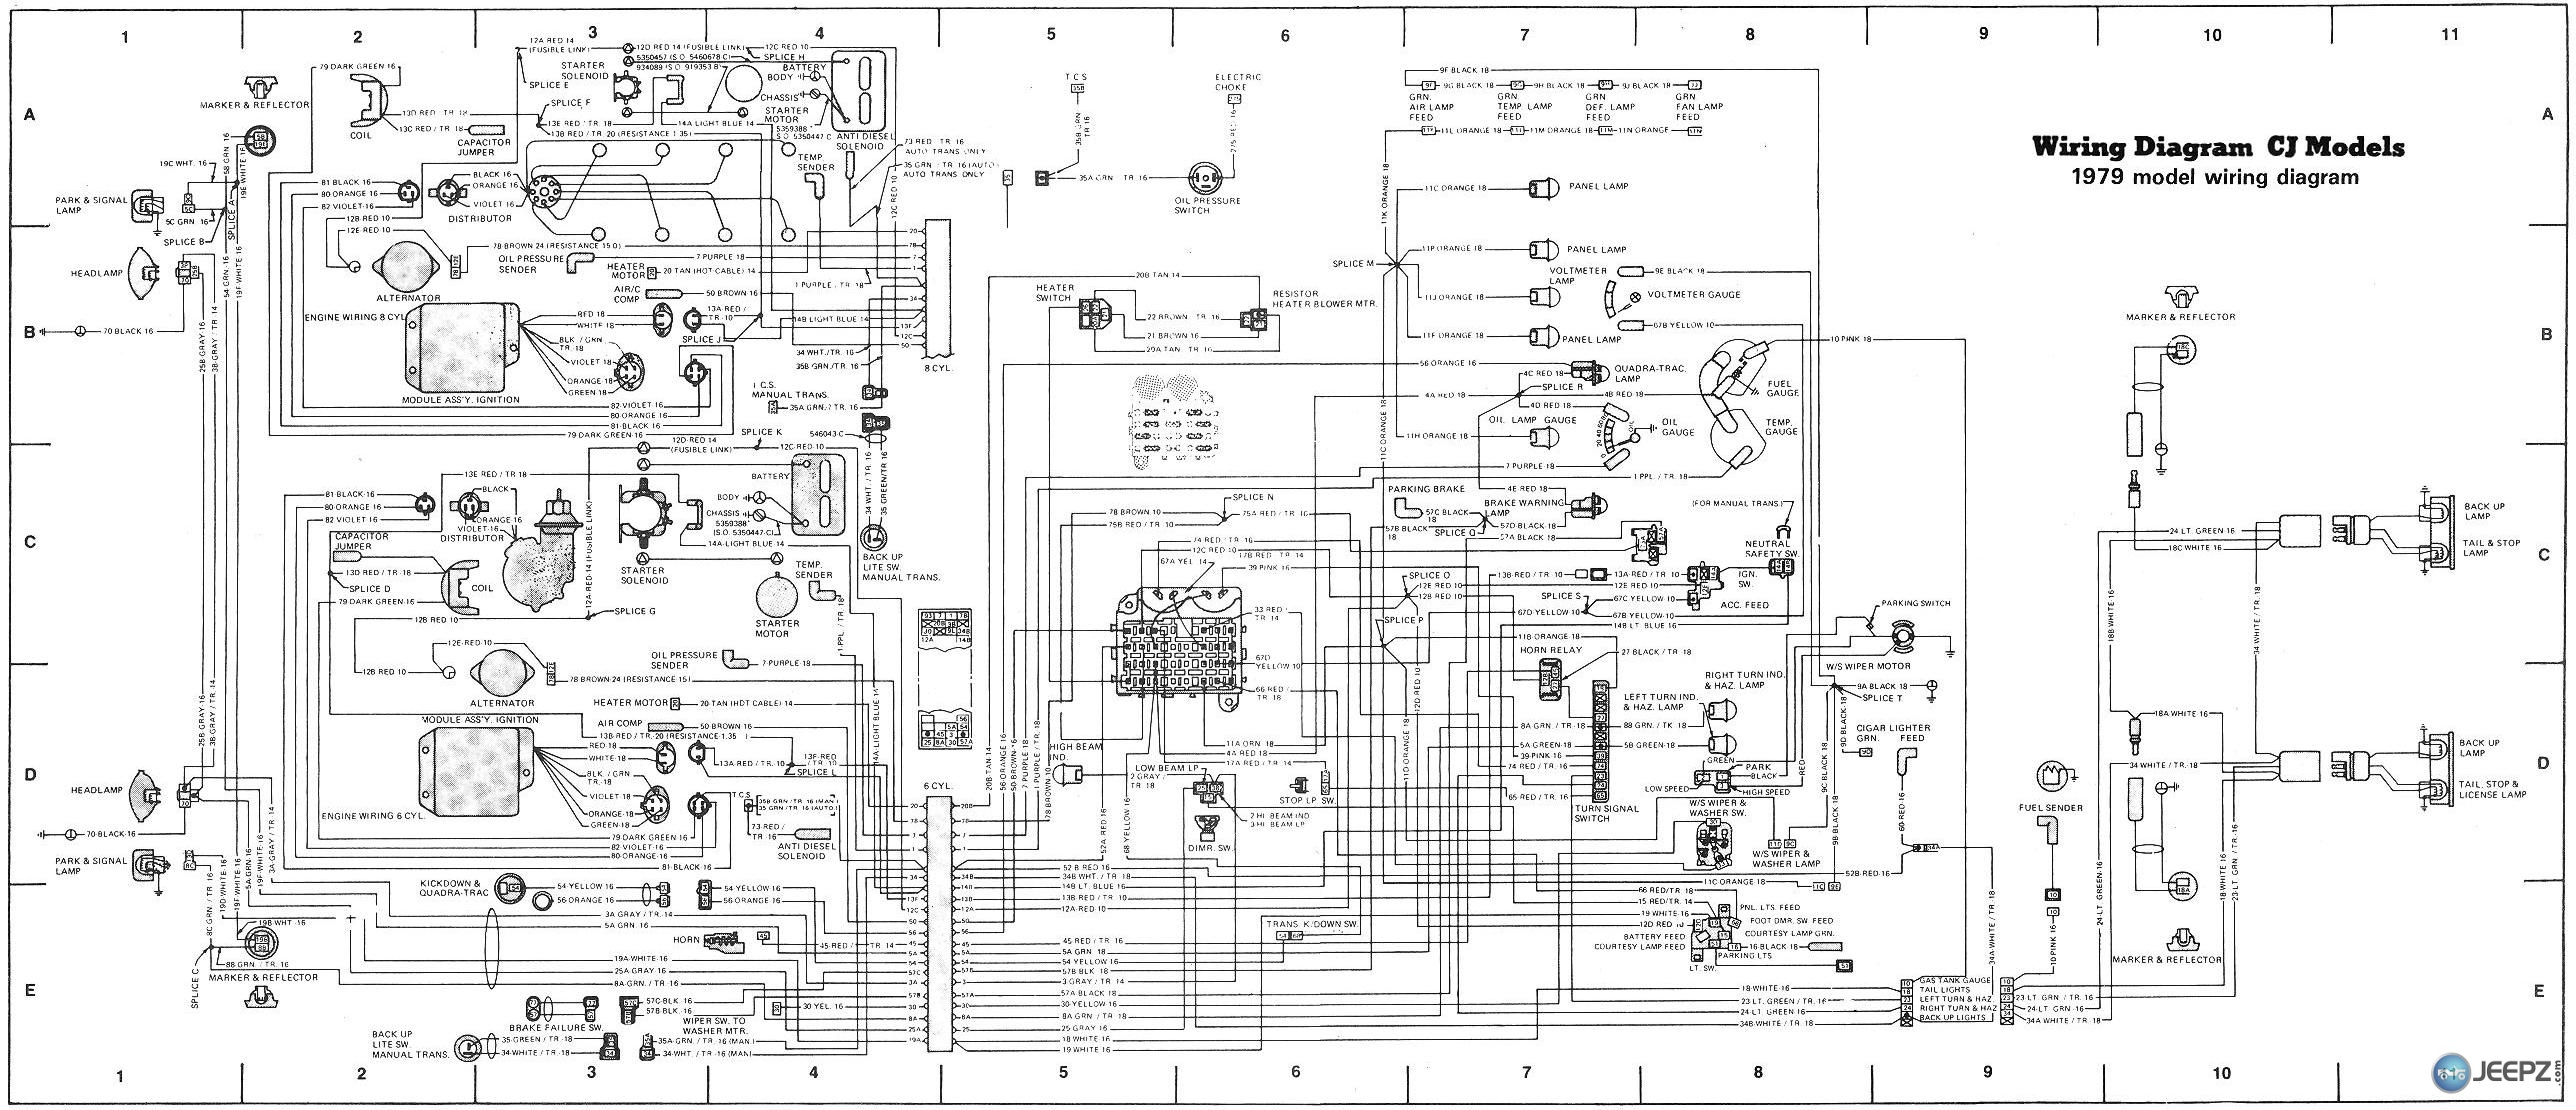 wiring diagrams for 1985 jeep cj7 trusted wiring diagram 1969 jeep cj5 wiring diagram jeep [ 2576 x 1110 Pixel ]